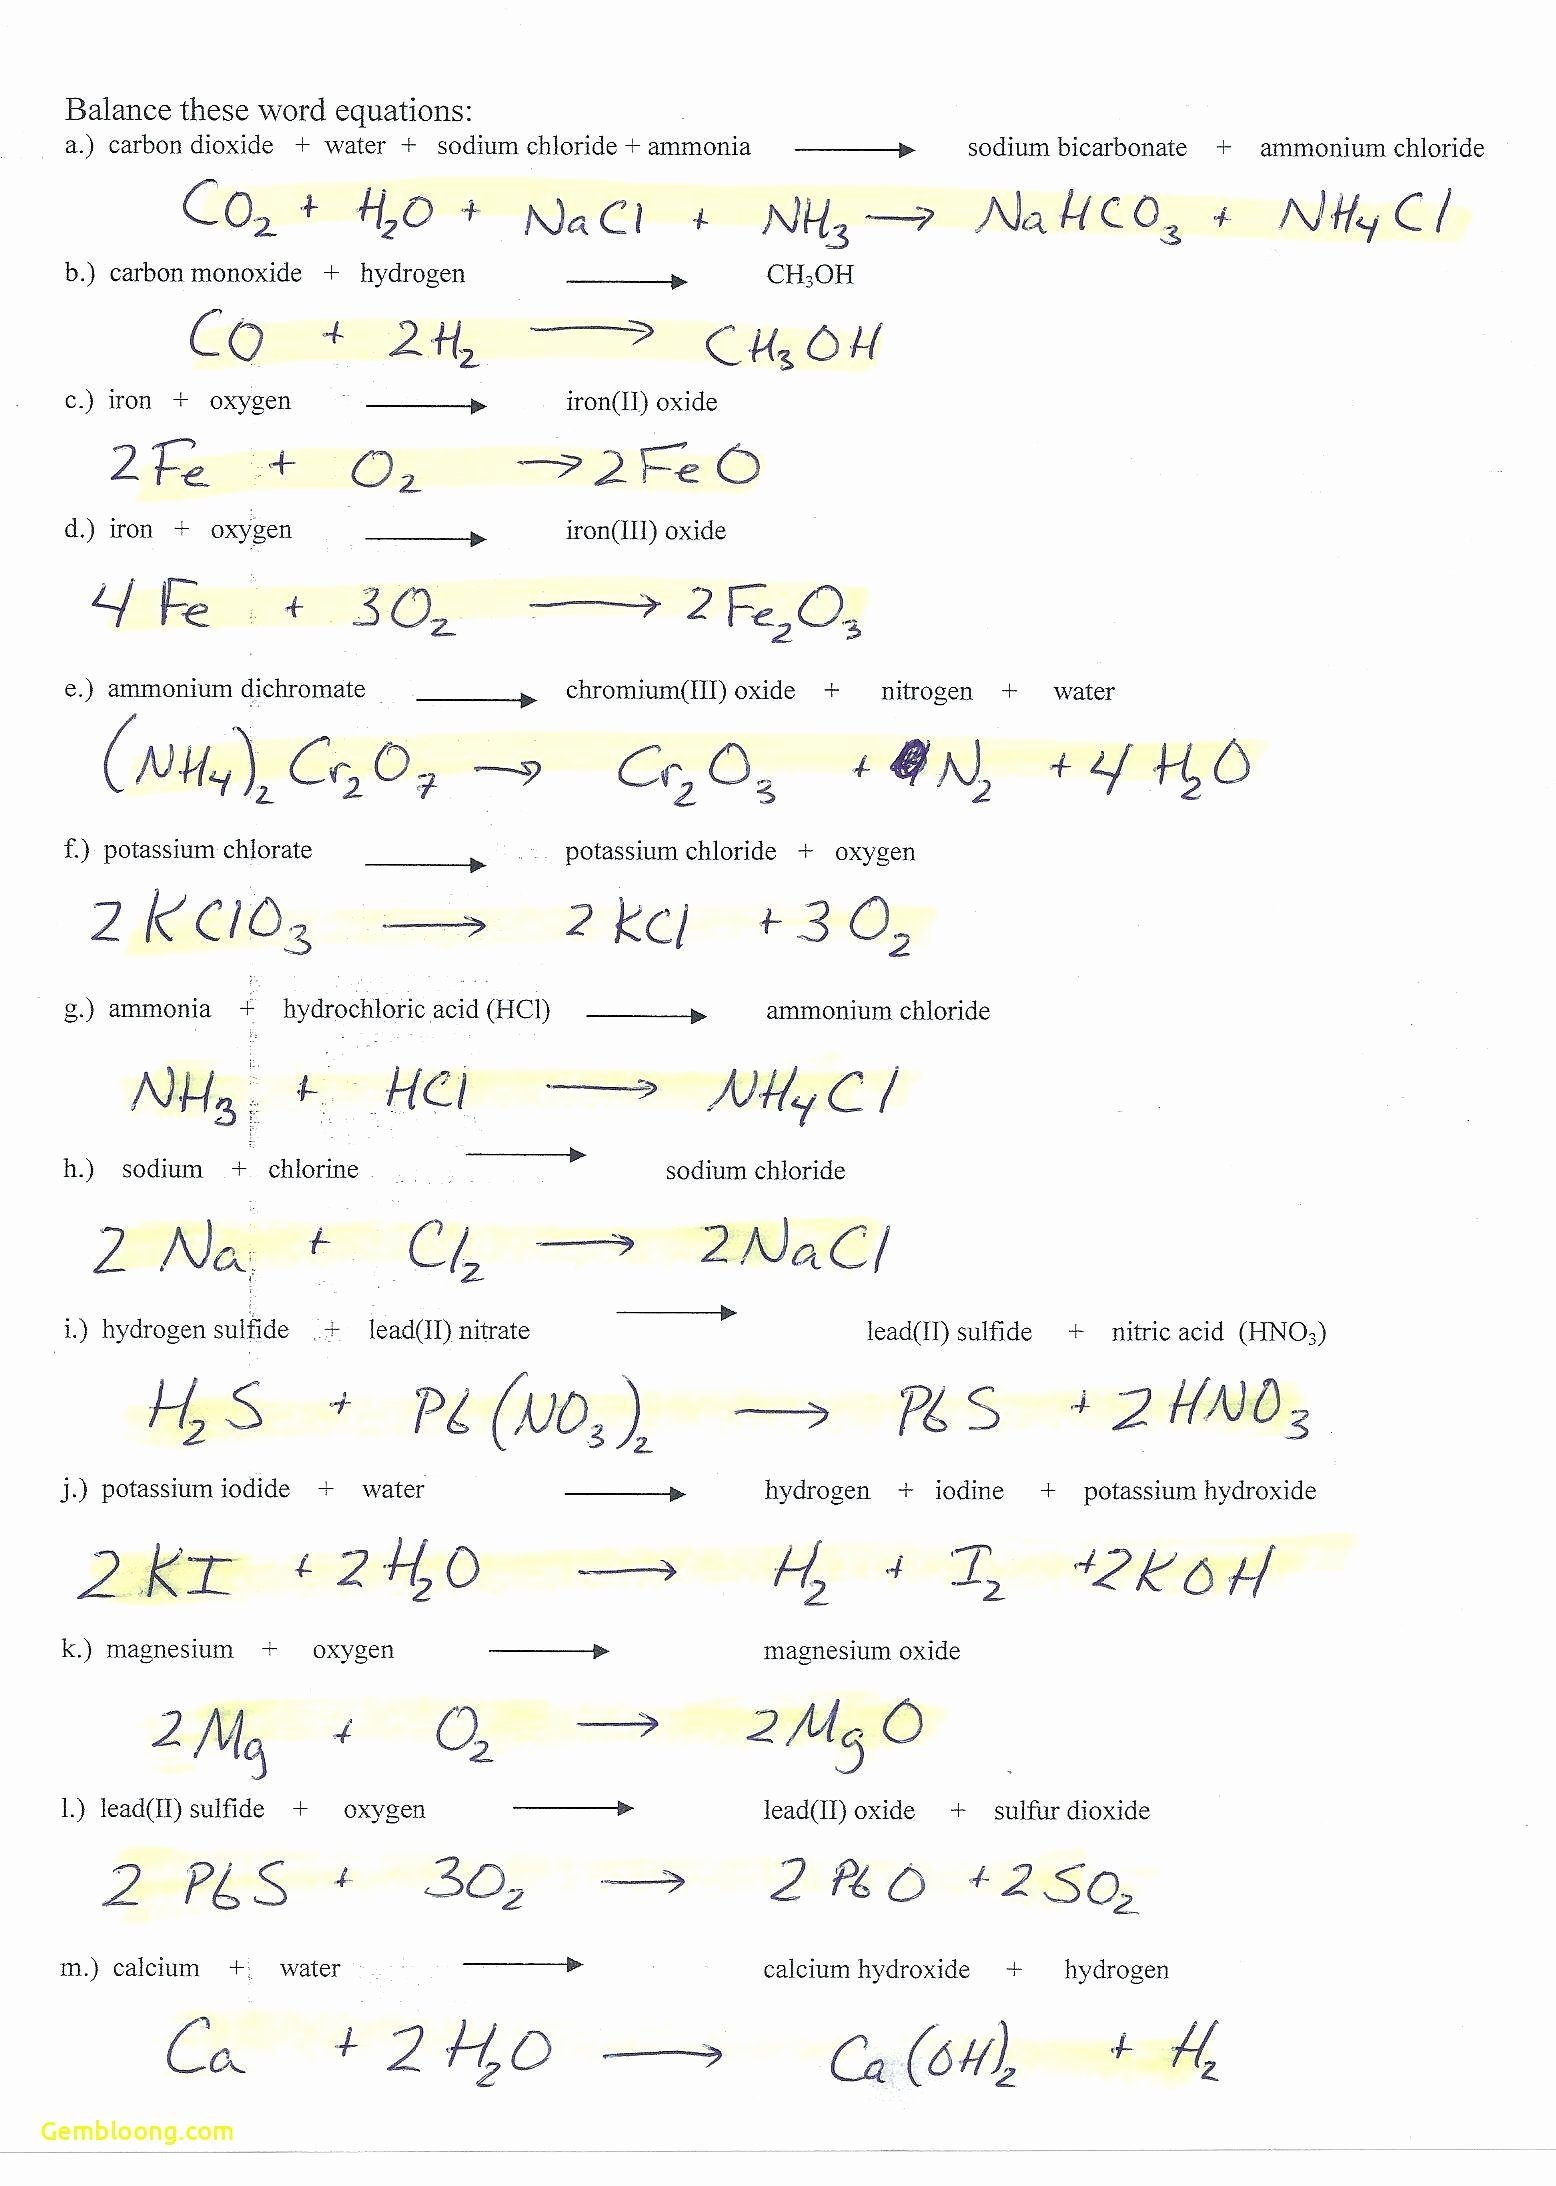 Limiting Reactant Worksheet Answers Beautiful Limiting Reagent Worksheet 1 Answers Cramerforcongress